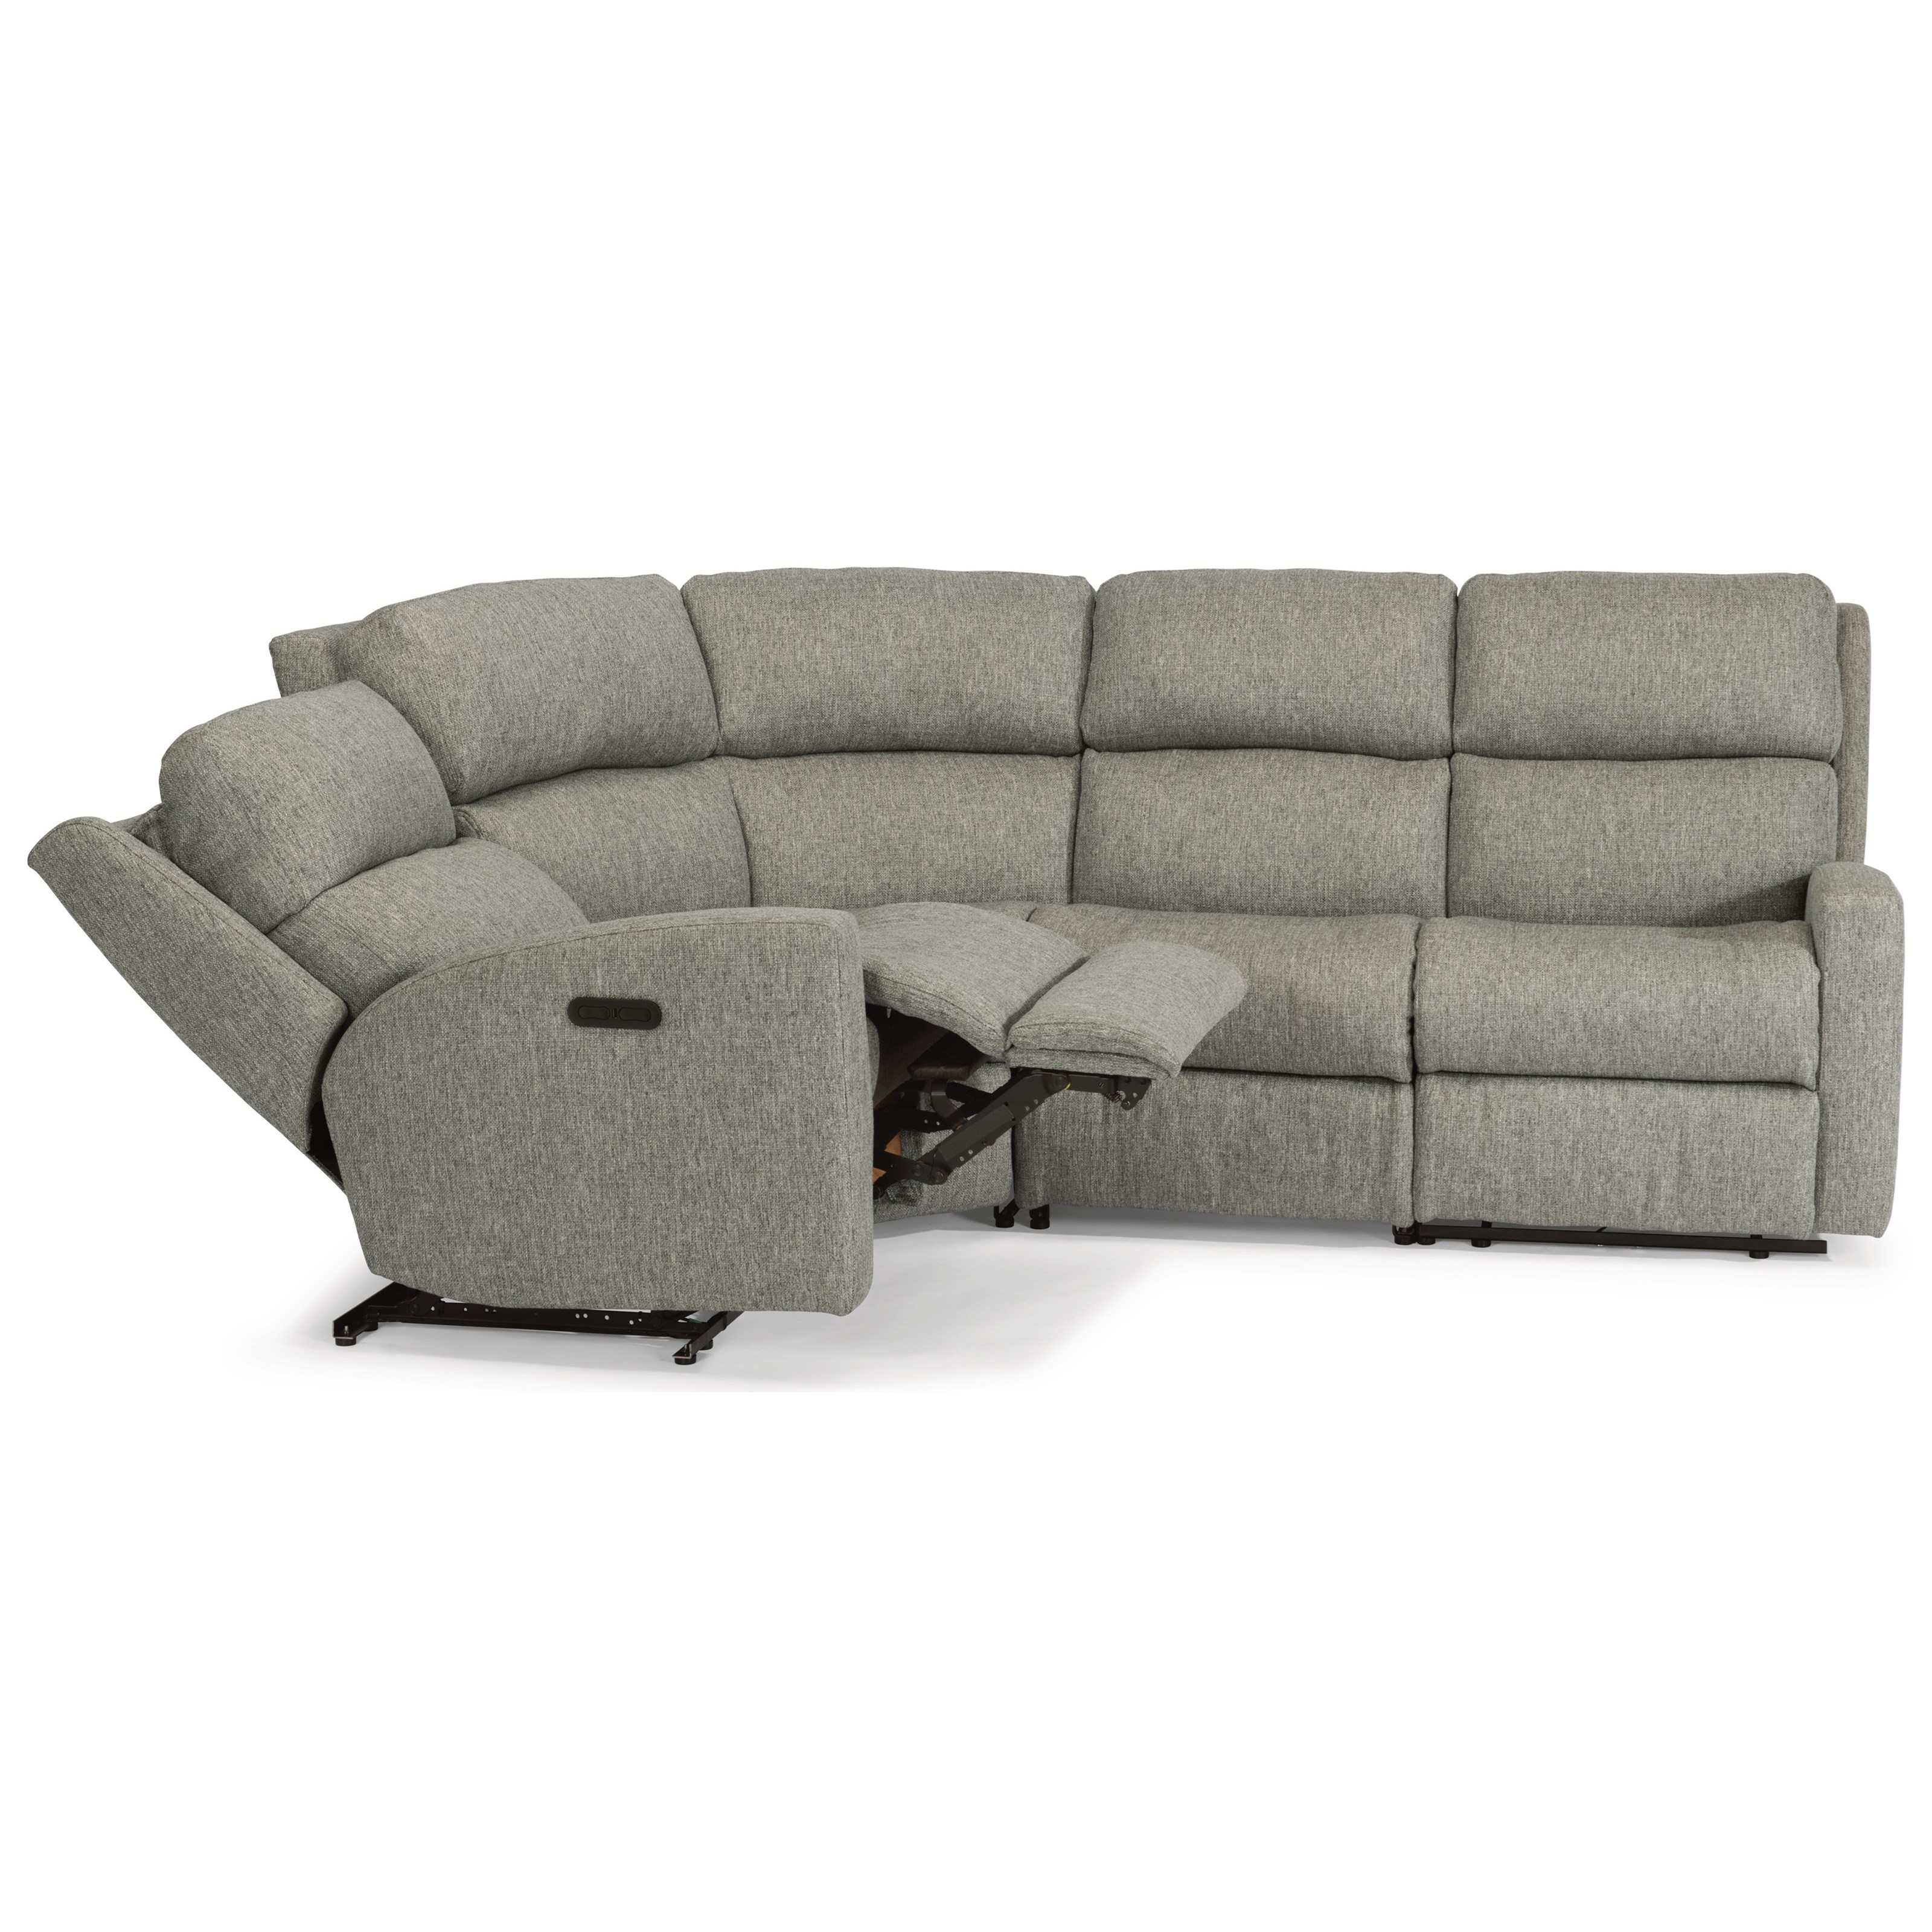 Catalina 4 Pc Reclining Sectional w/ Pwr Headrests by Flexsteel at Steger's Furniture